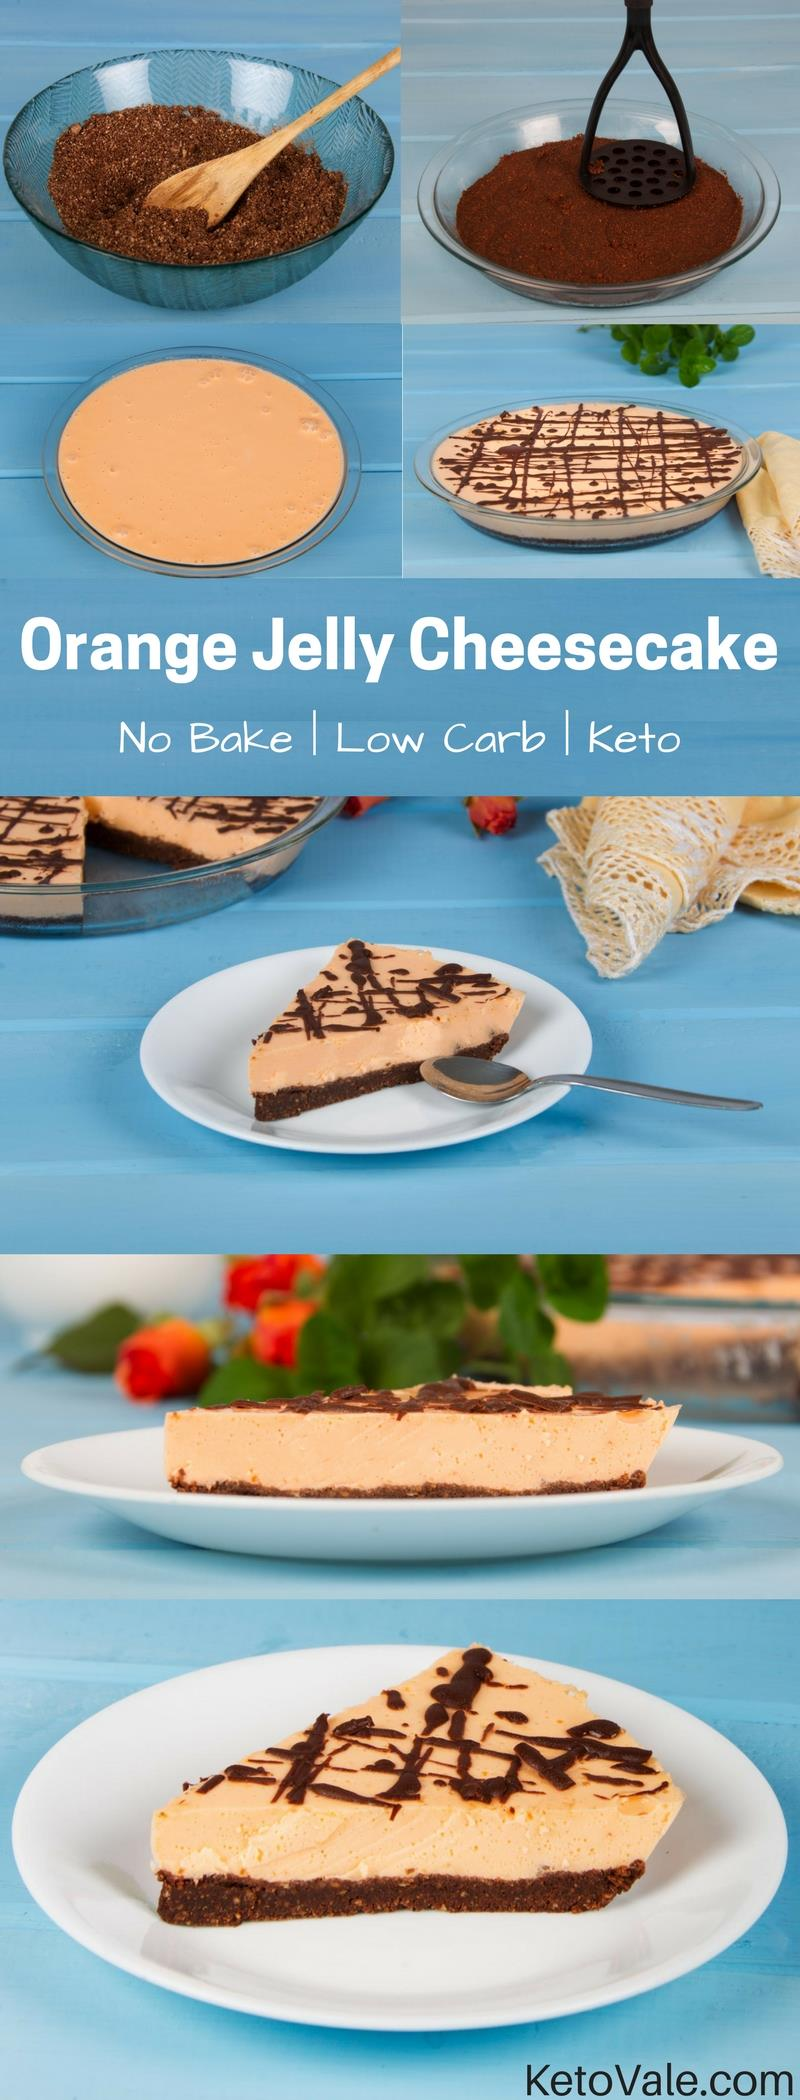 No Bake Jelly Cheesecake Recipe